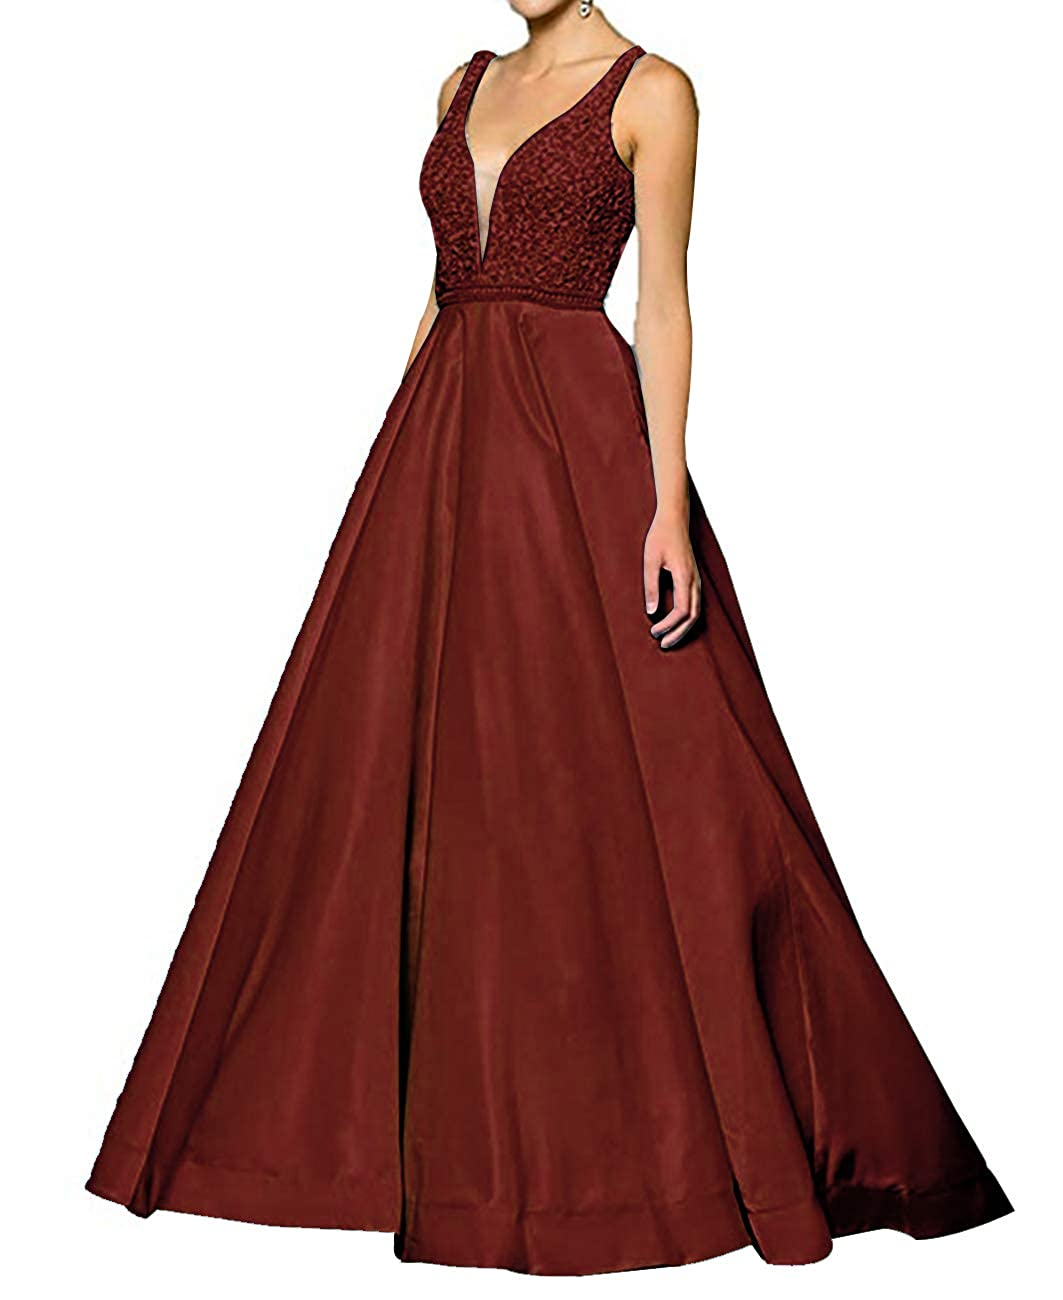 Burgundy Homecy Sequined Prom Dresses Long V Neck Sleeveless Evening Ball Gowns for Women Formal